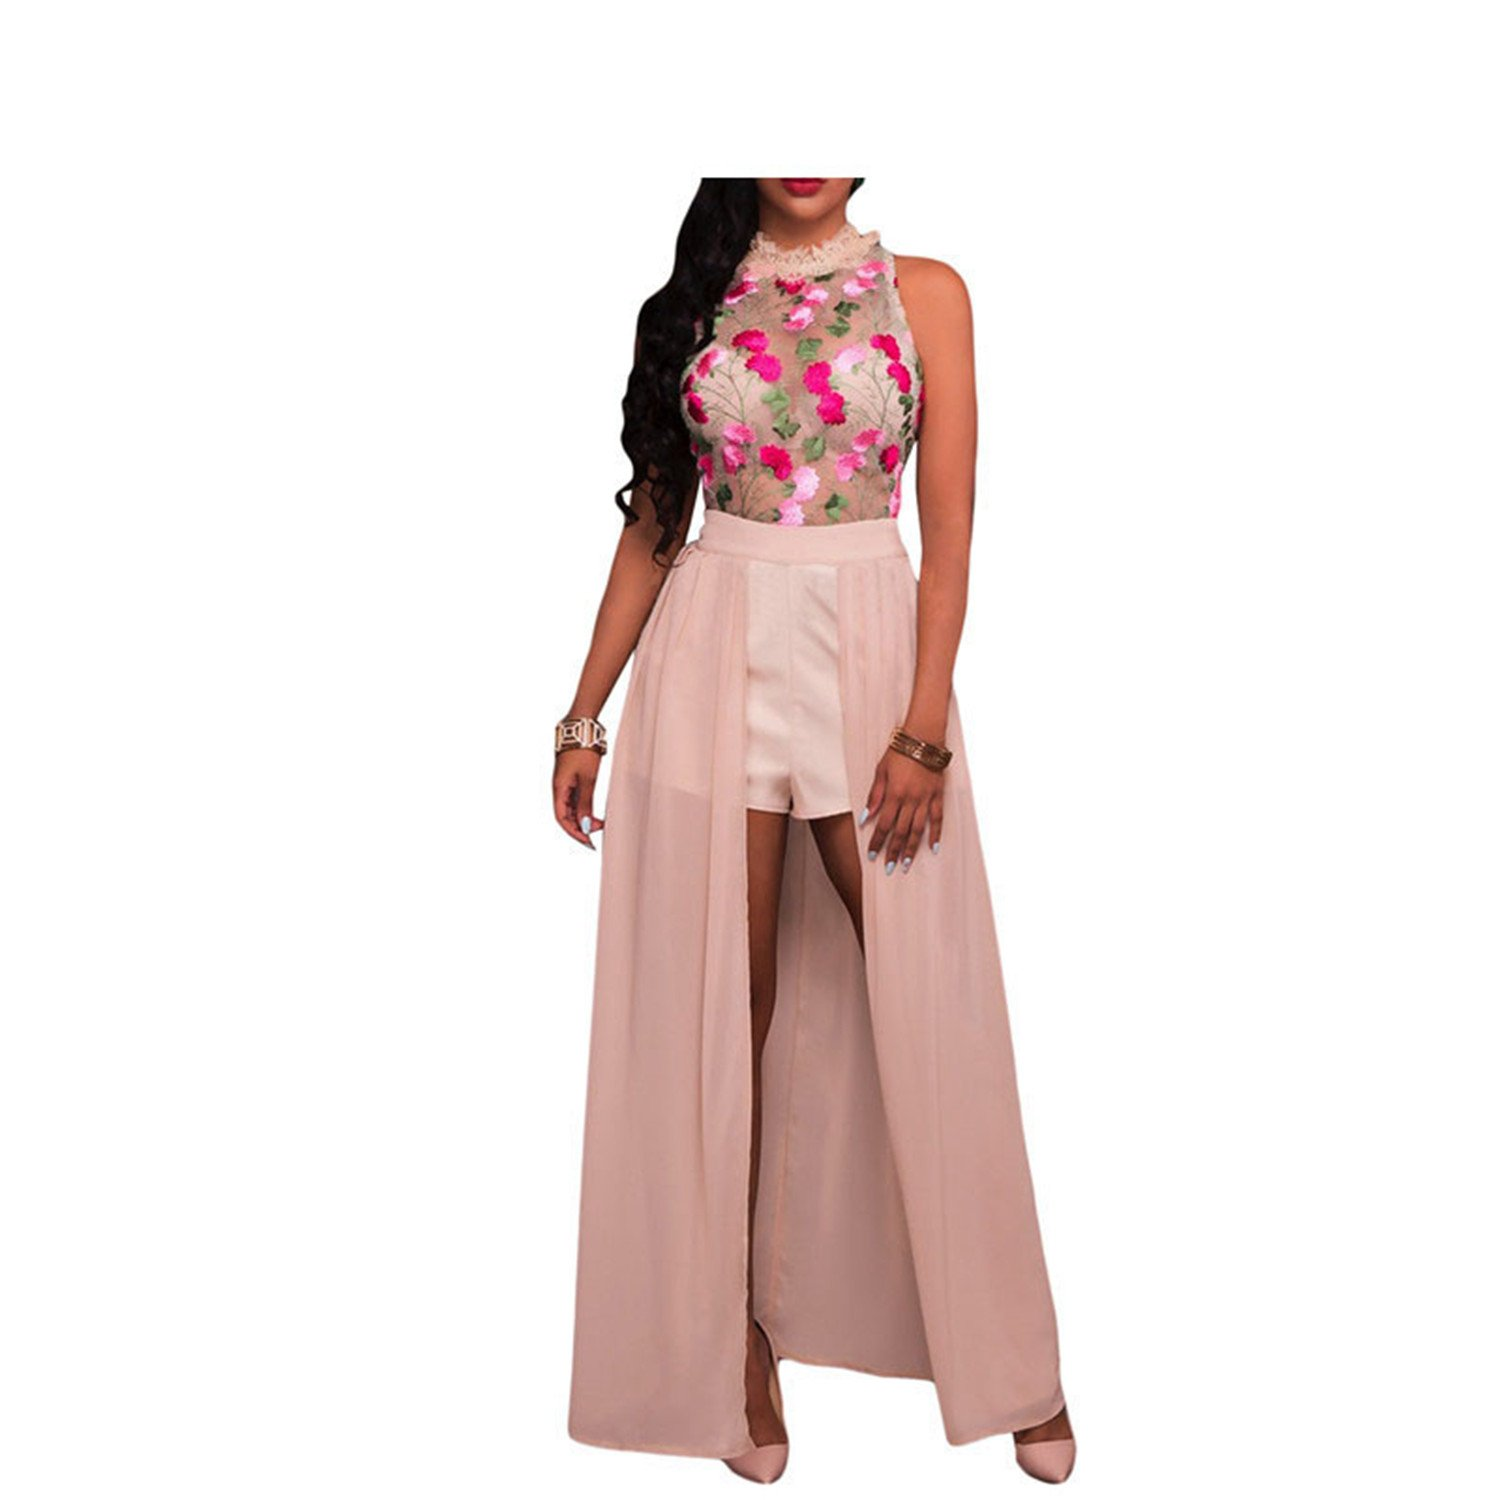 AUUOCC Sheer Mesh Embroidery Chiffon Club Party Womens Rompers LC64265 Pink S